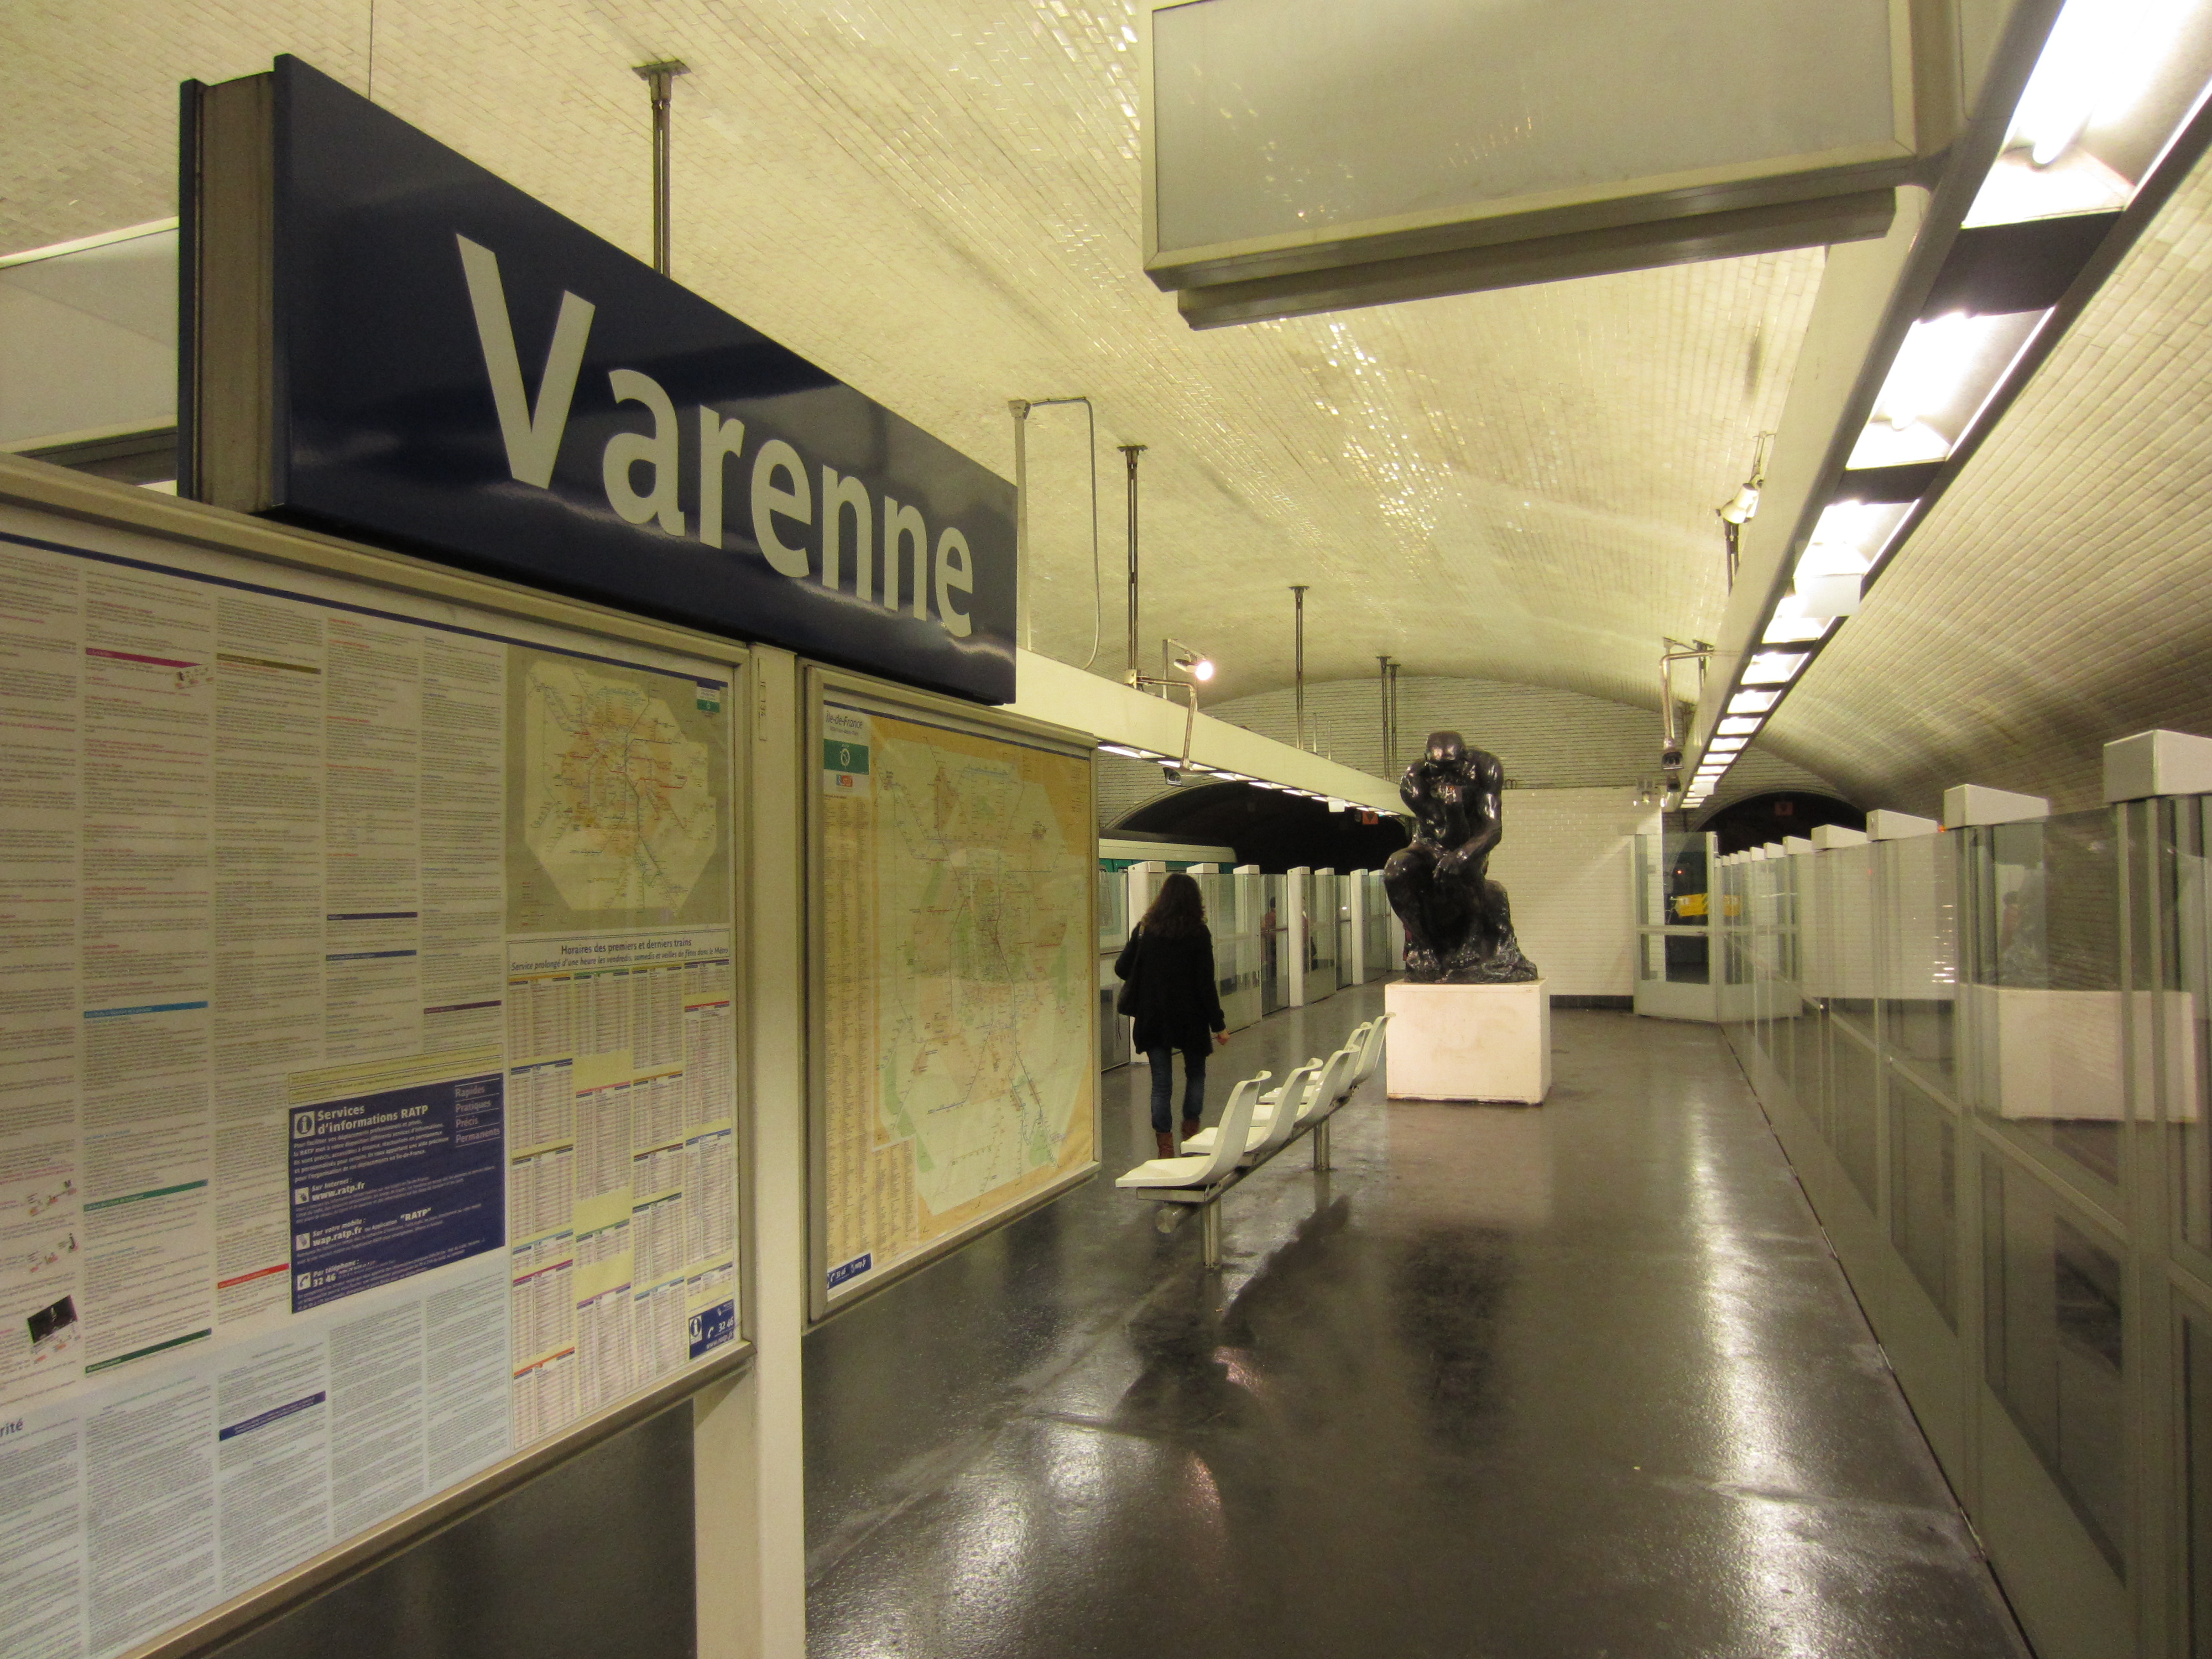 varenne metro station sign